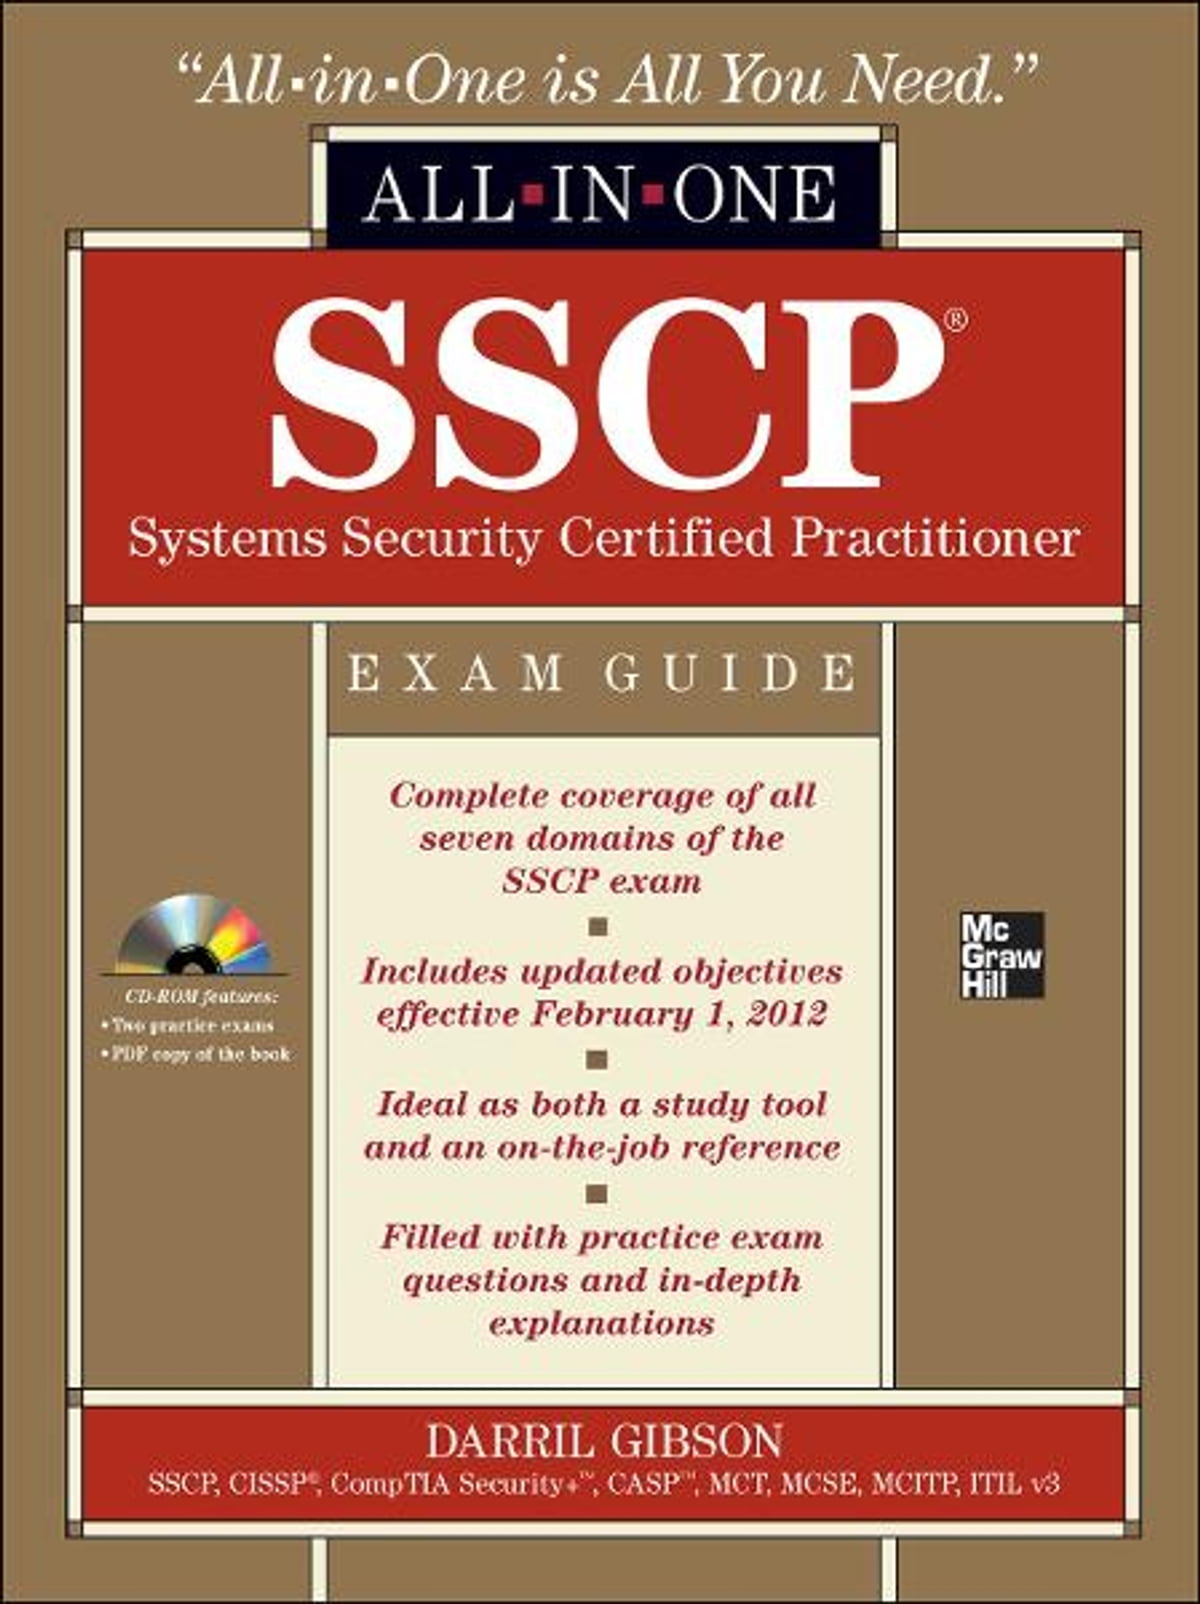 Sscp systems security certified practitioner all in one exam guide sscp systems security certified practitioner all in one exam guide ebook by darril gibson 9780071771559 rakuten kobo xflitez Images